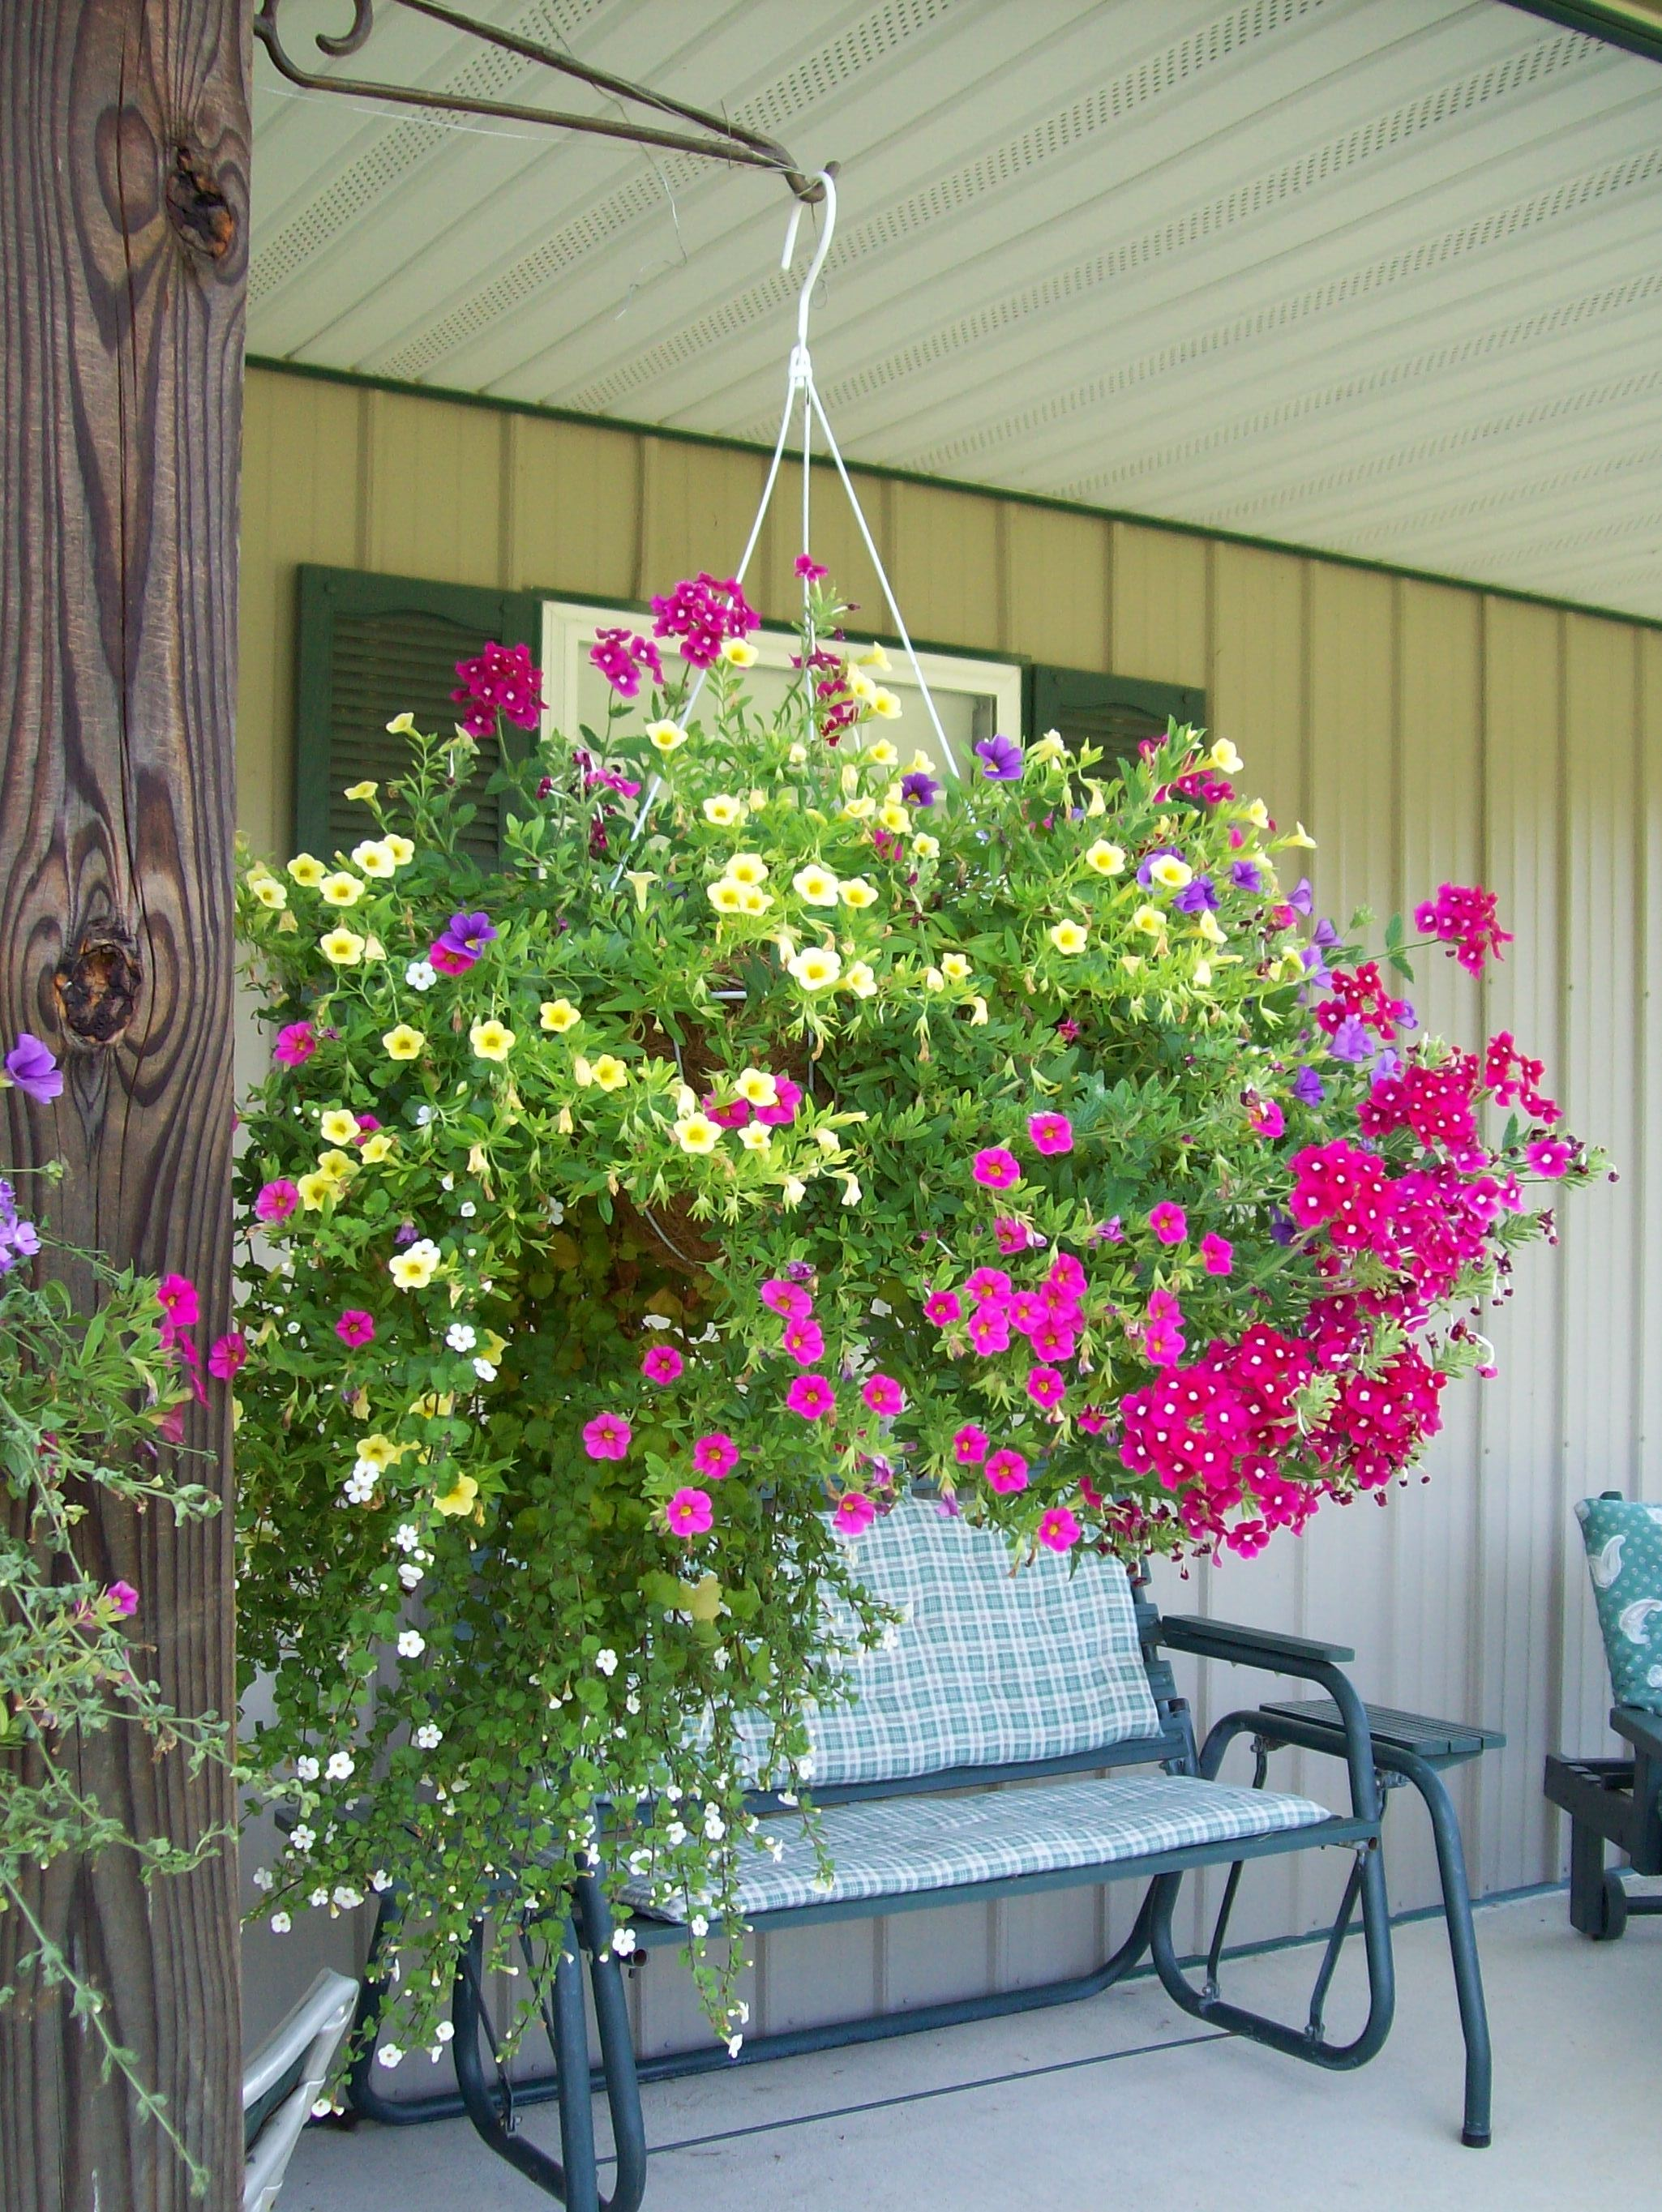 Ohio clinton county midland - Mixed Annual Hanging Basket